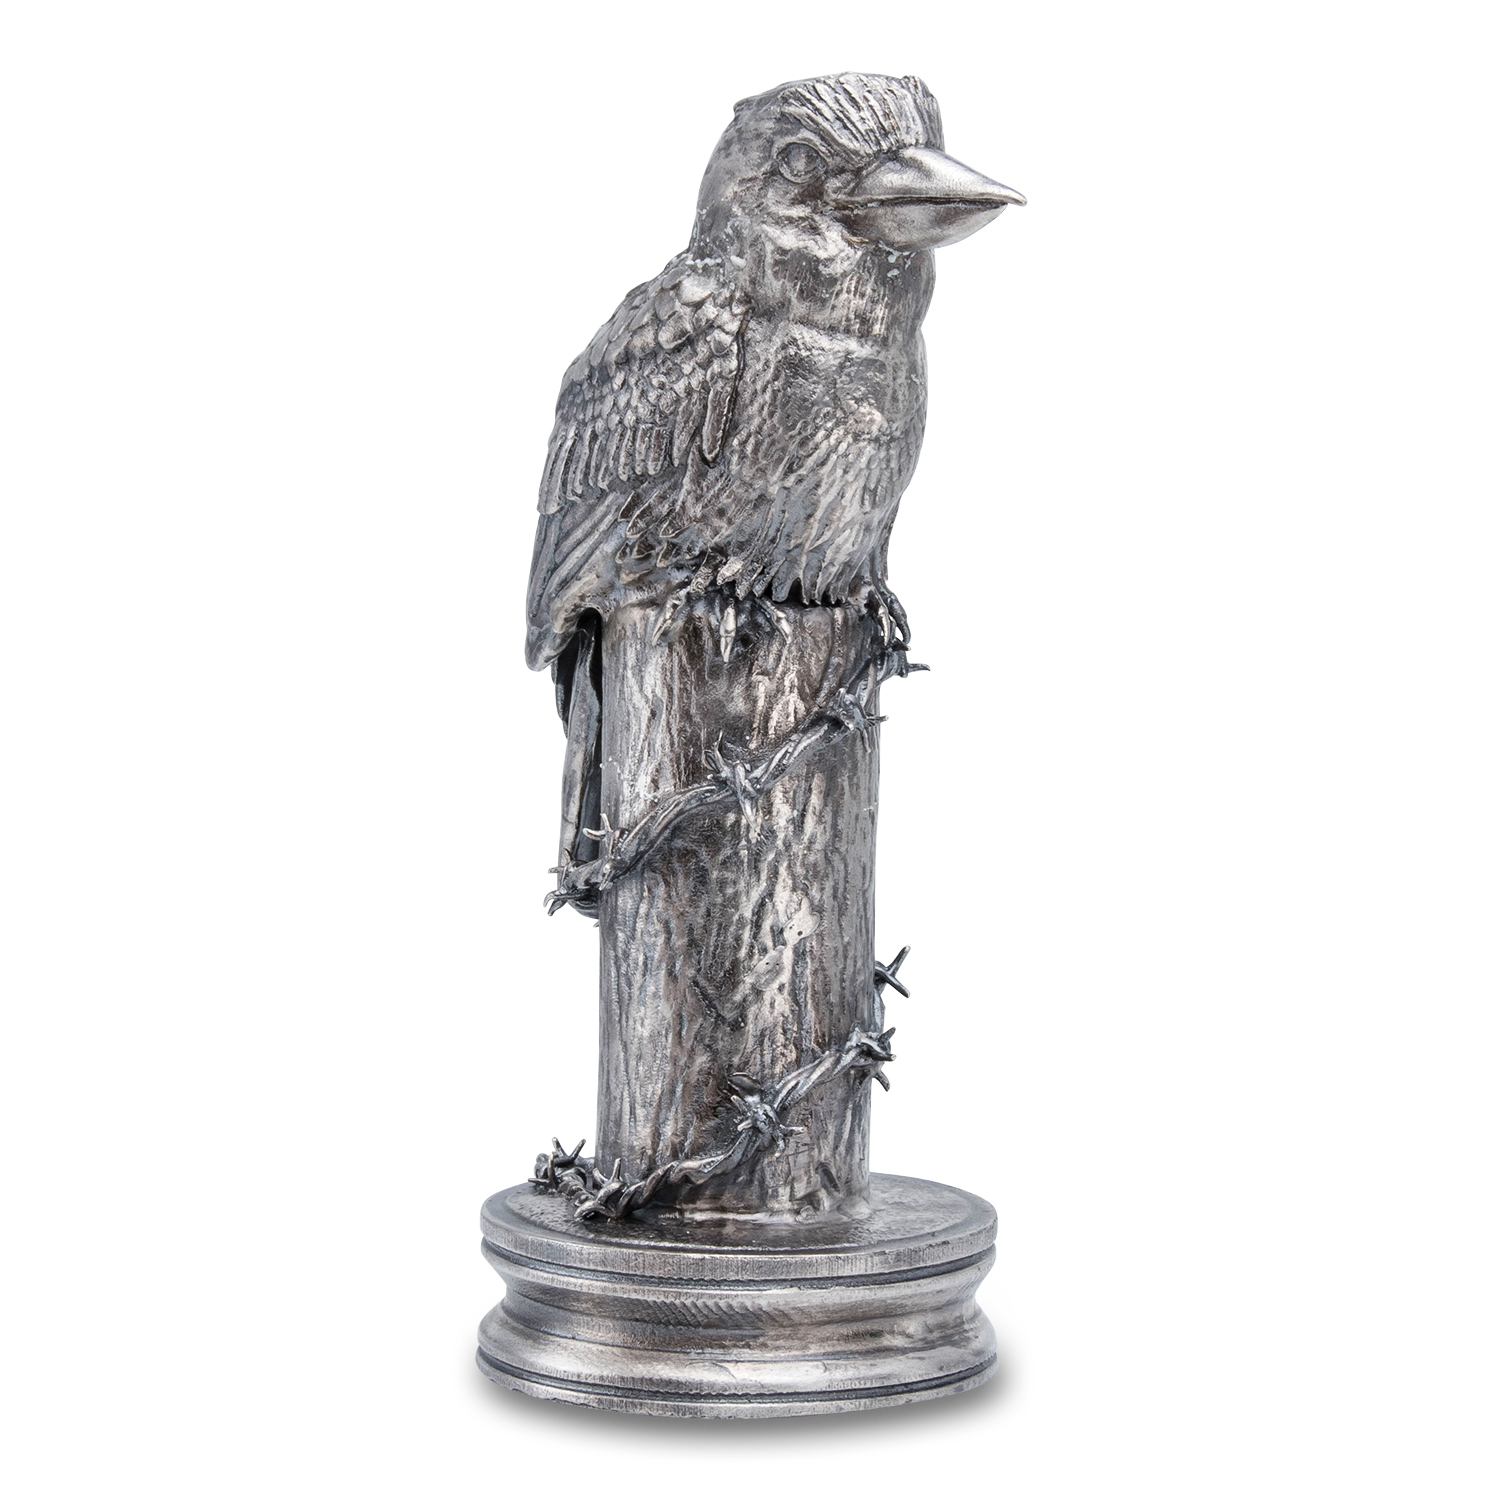 20 oz Silver Antique Statue - Coins of the World (Kookaburra)